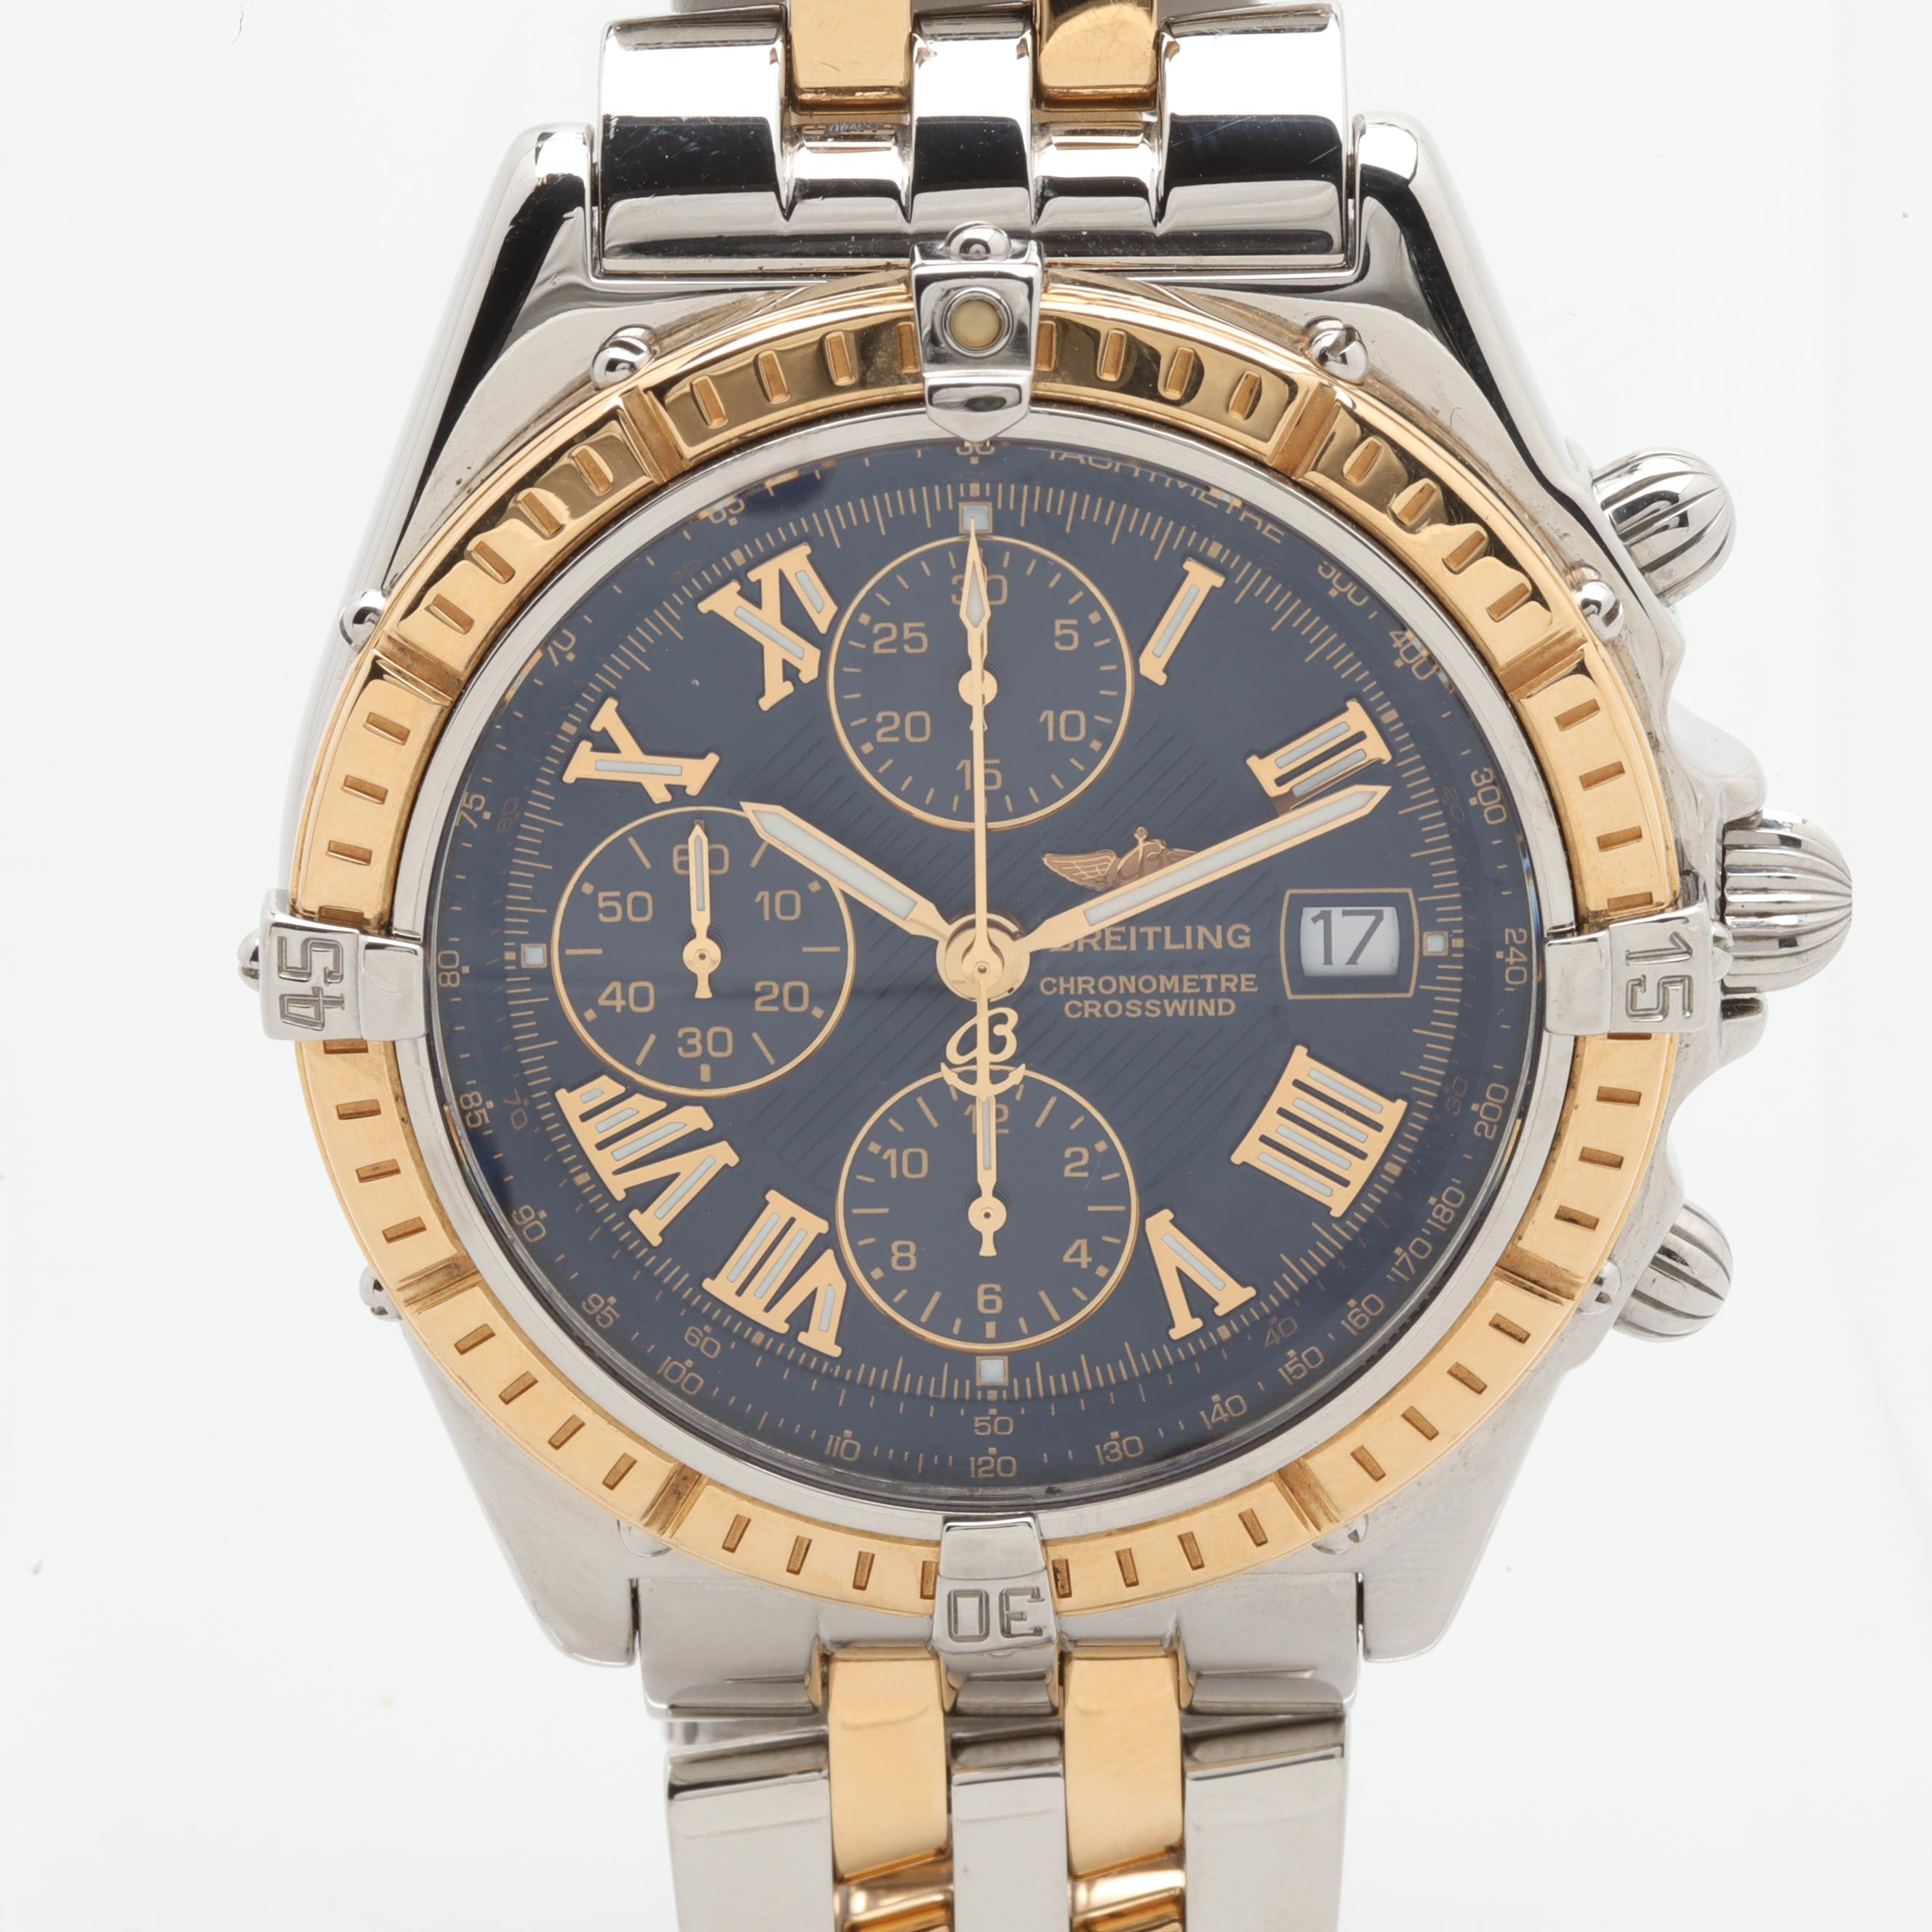 Breitling Crosswind Stainless Steel and 18K Yellow Gold Chronograph Wristwatch